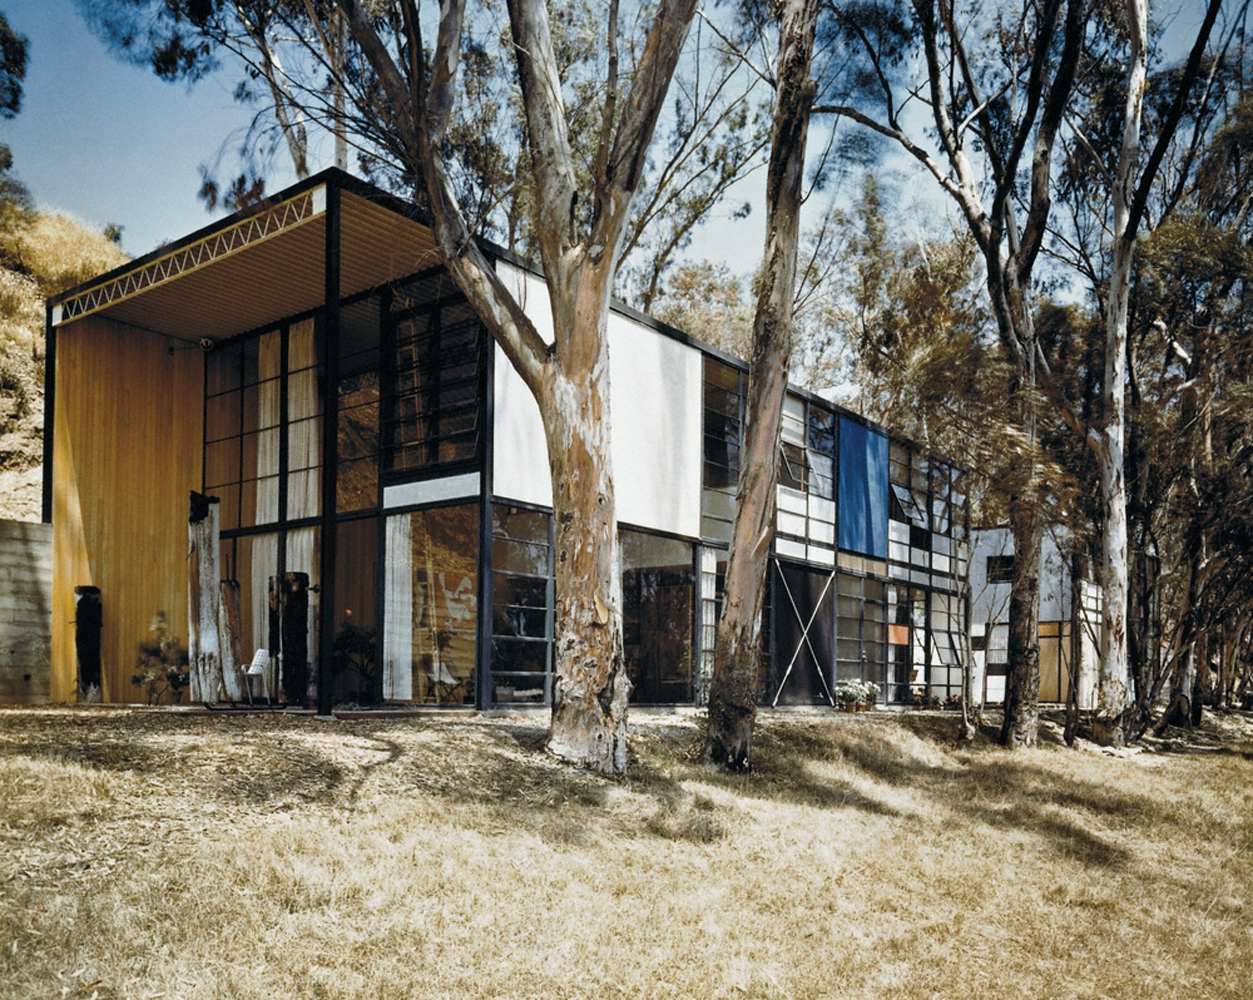 Case Study House #8, Pacific Palisades, CA. 1958 Charles & Ray Eames, architects